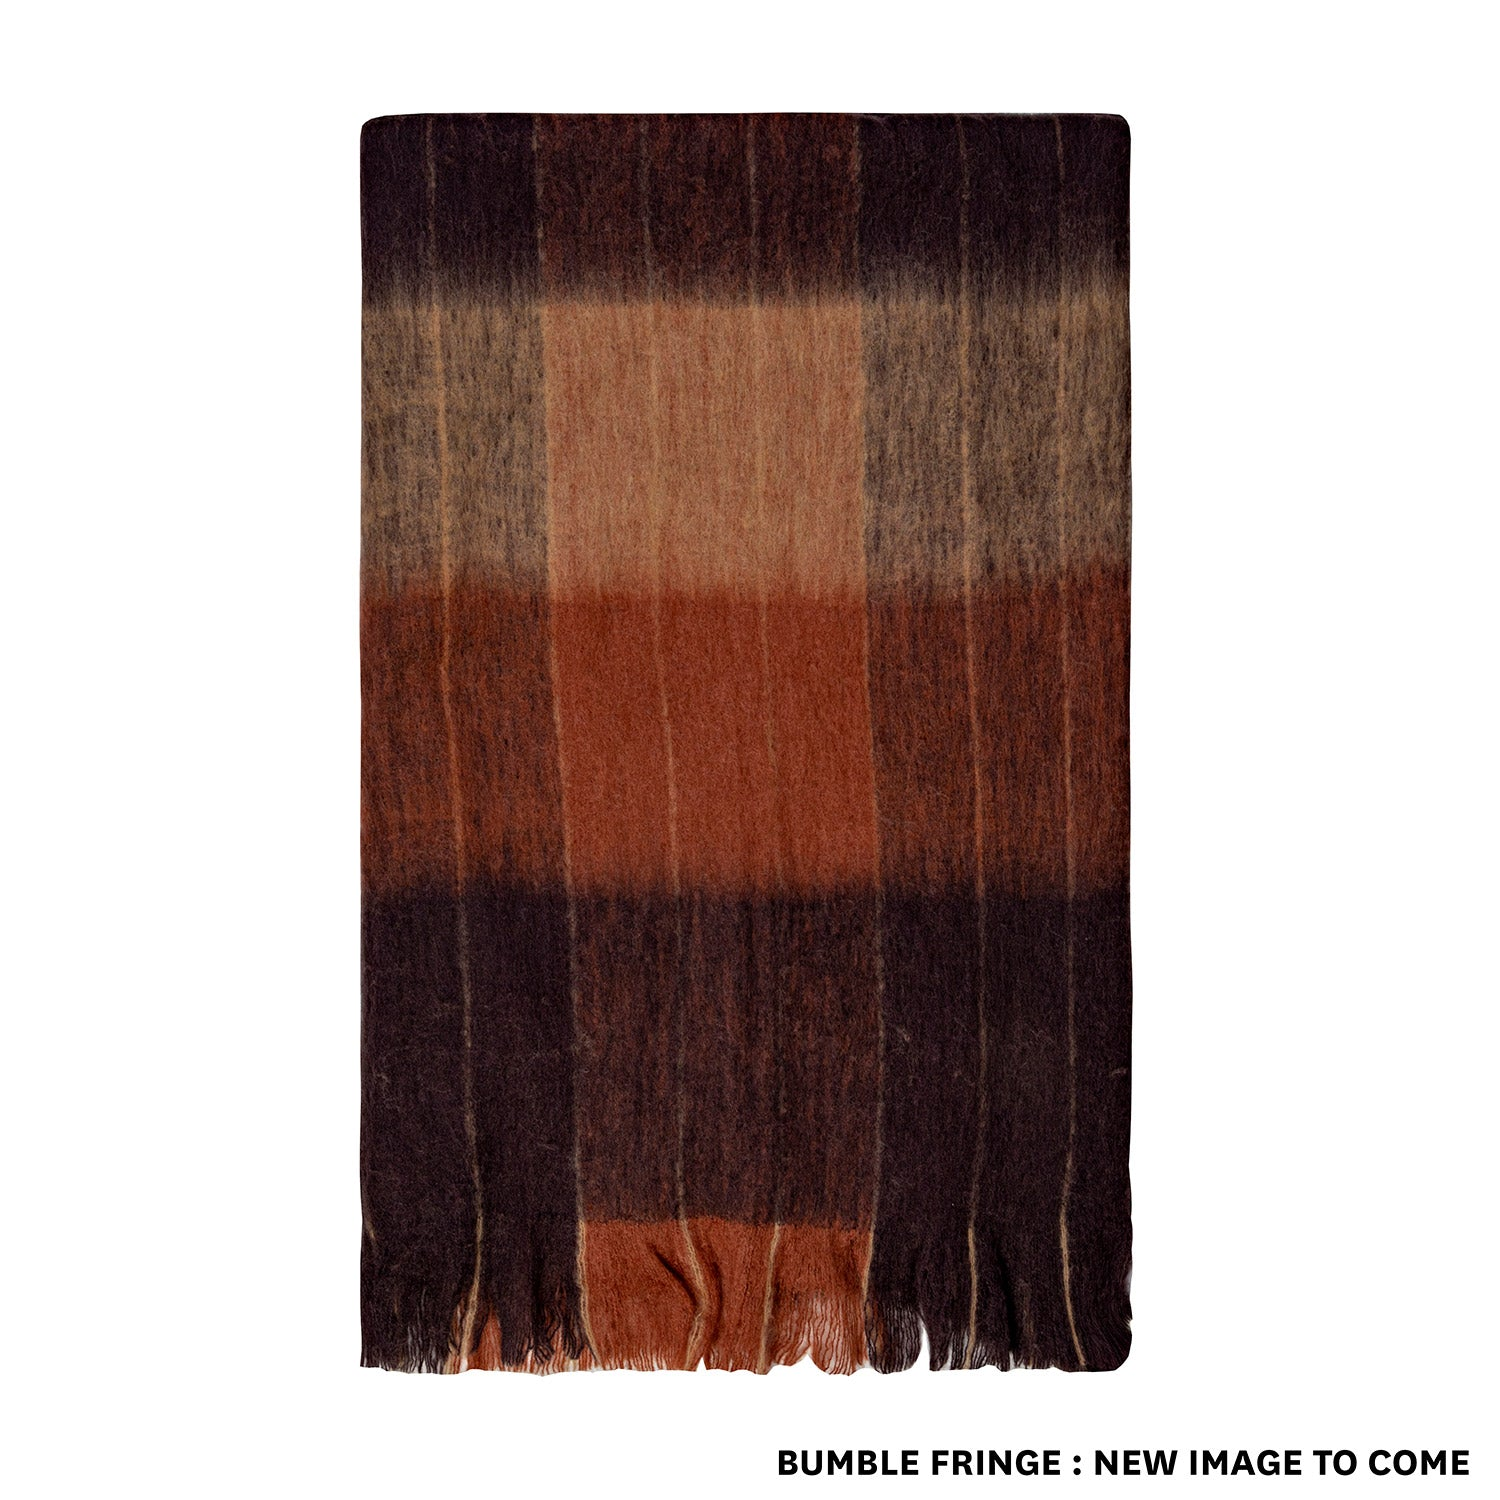 BLISS PENCIL STRIPE THROW, BUMBLE FRINGE, COFFEE, CAMEL, MOCHA